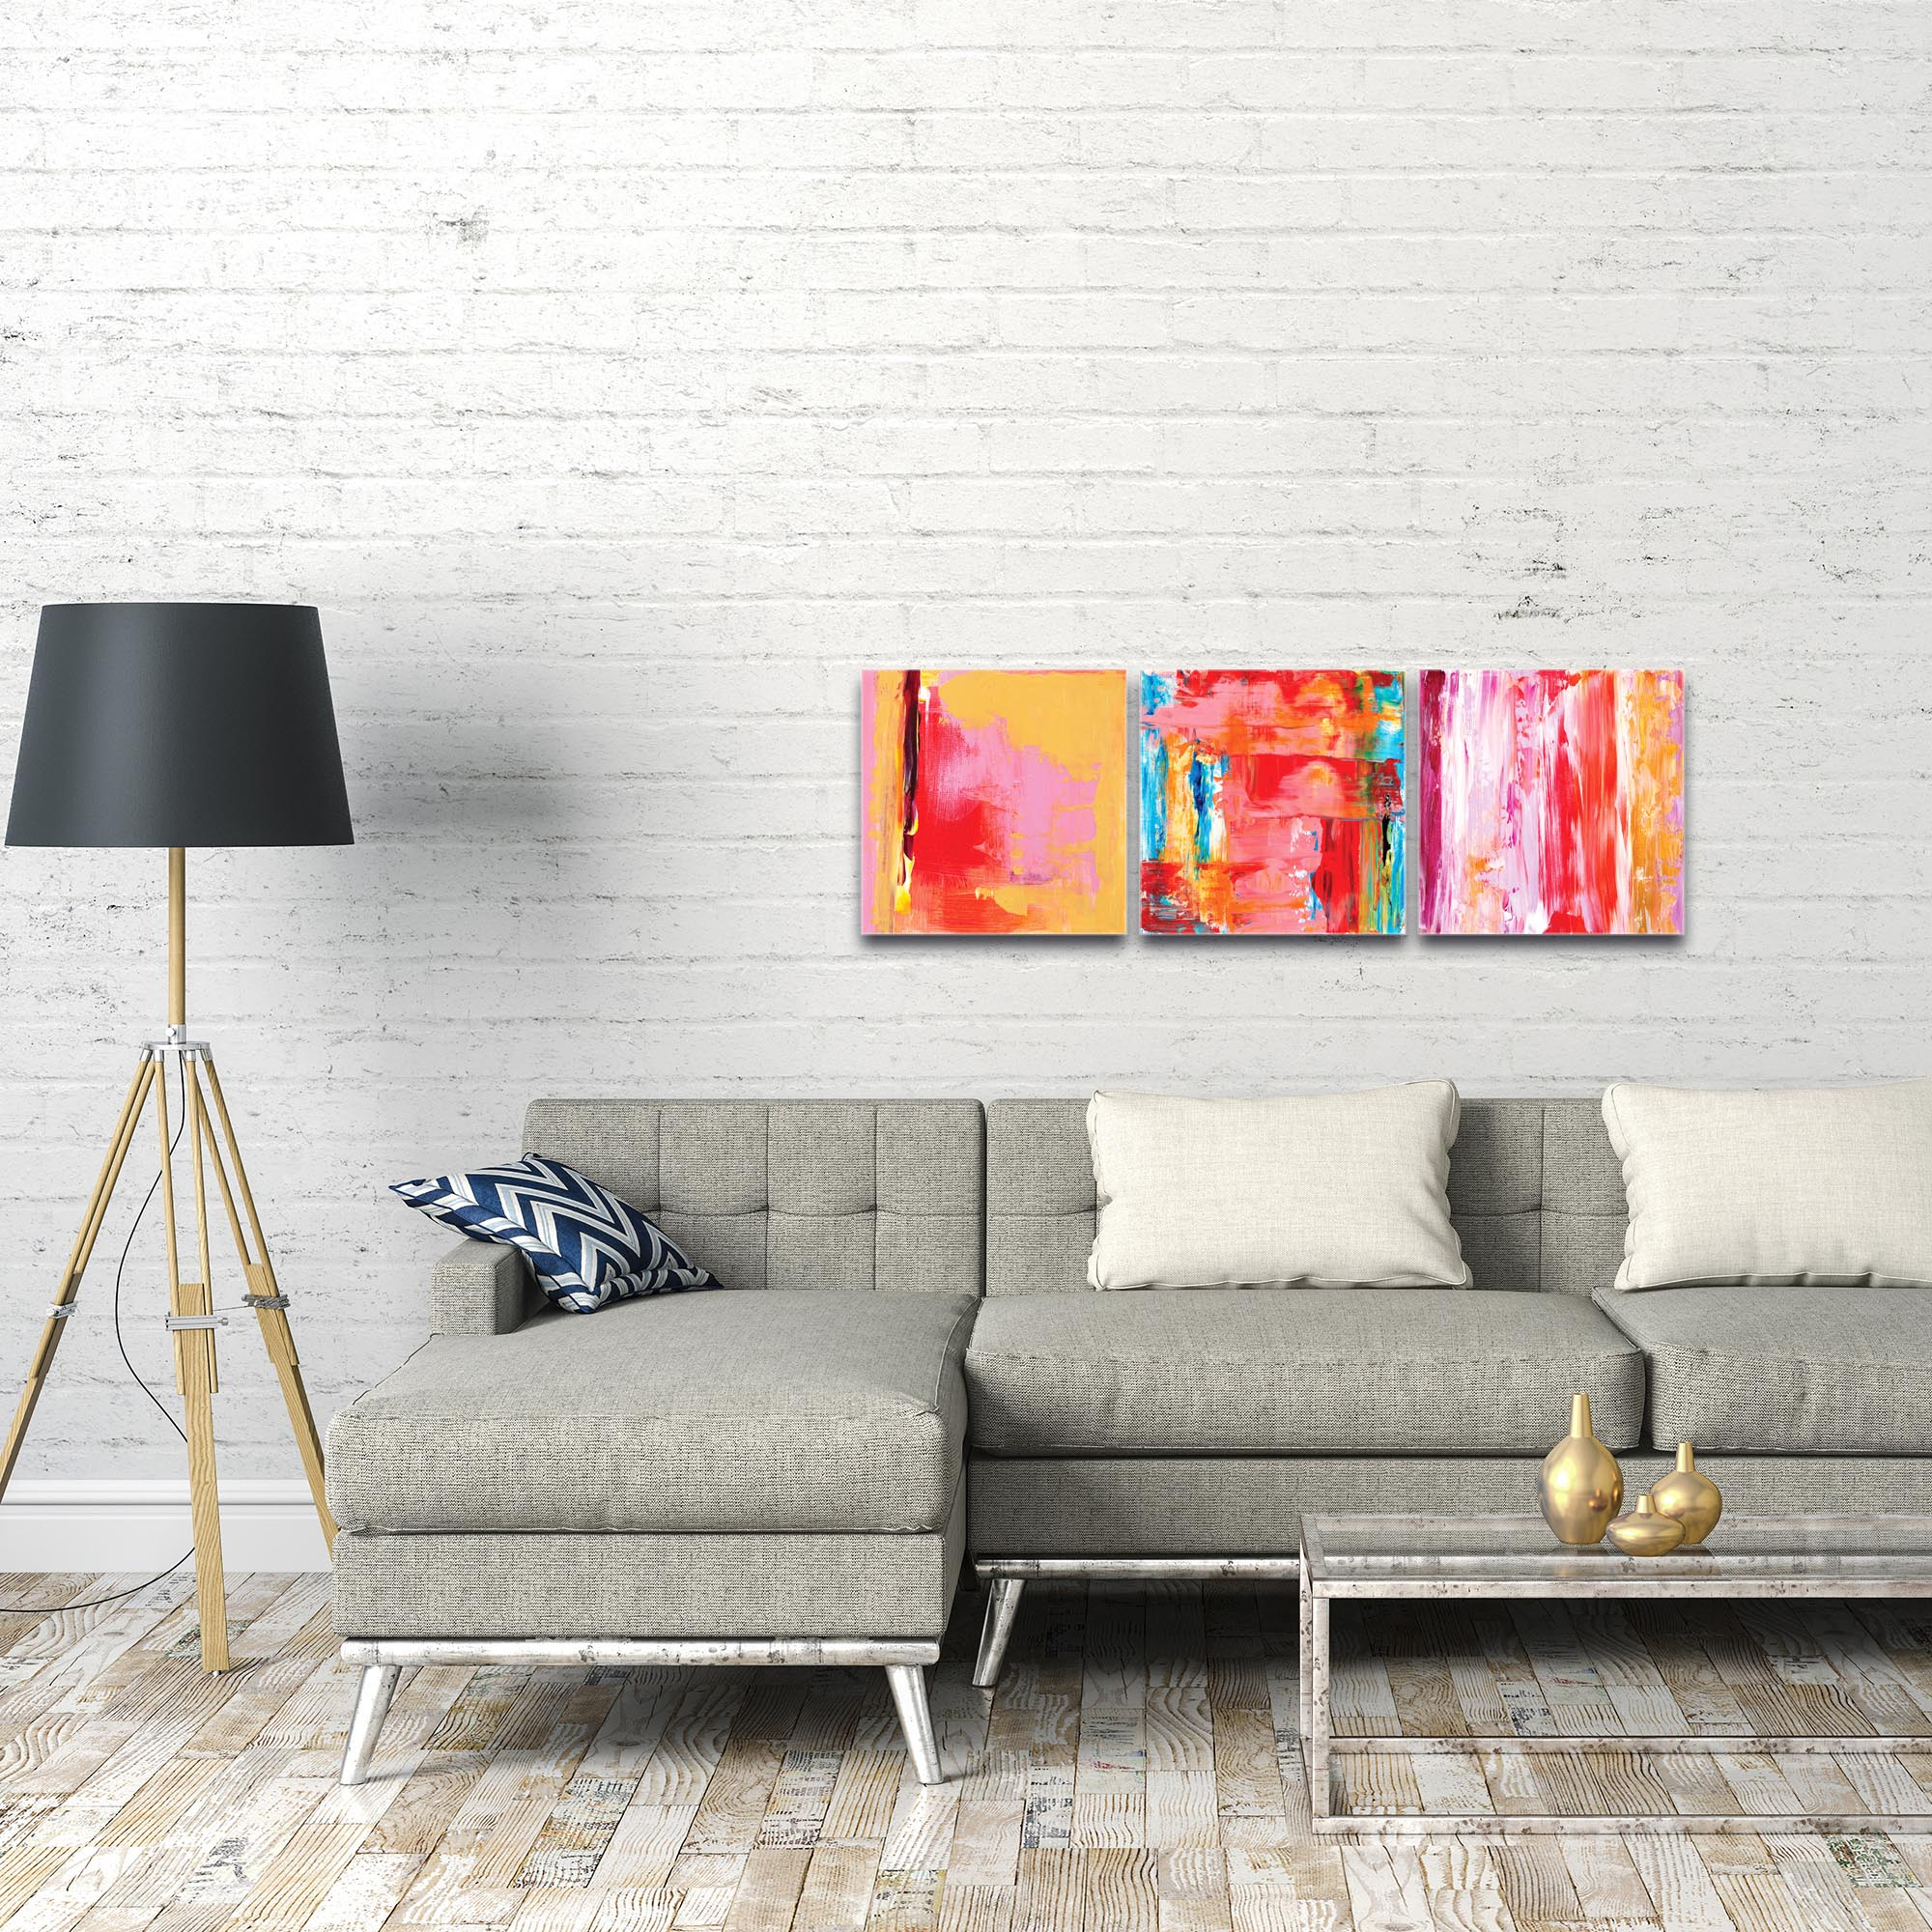 Abstract Wall Art 'Urban Triptych 3' - Urban Decor on Metal or Plexiglass - Image 3